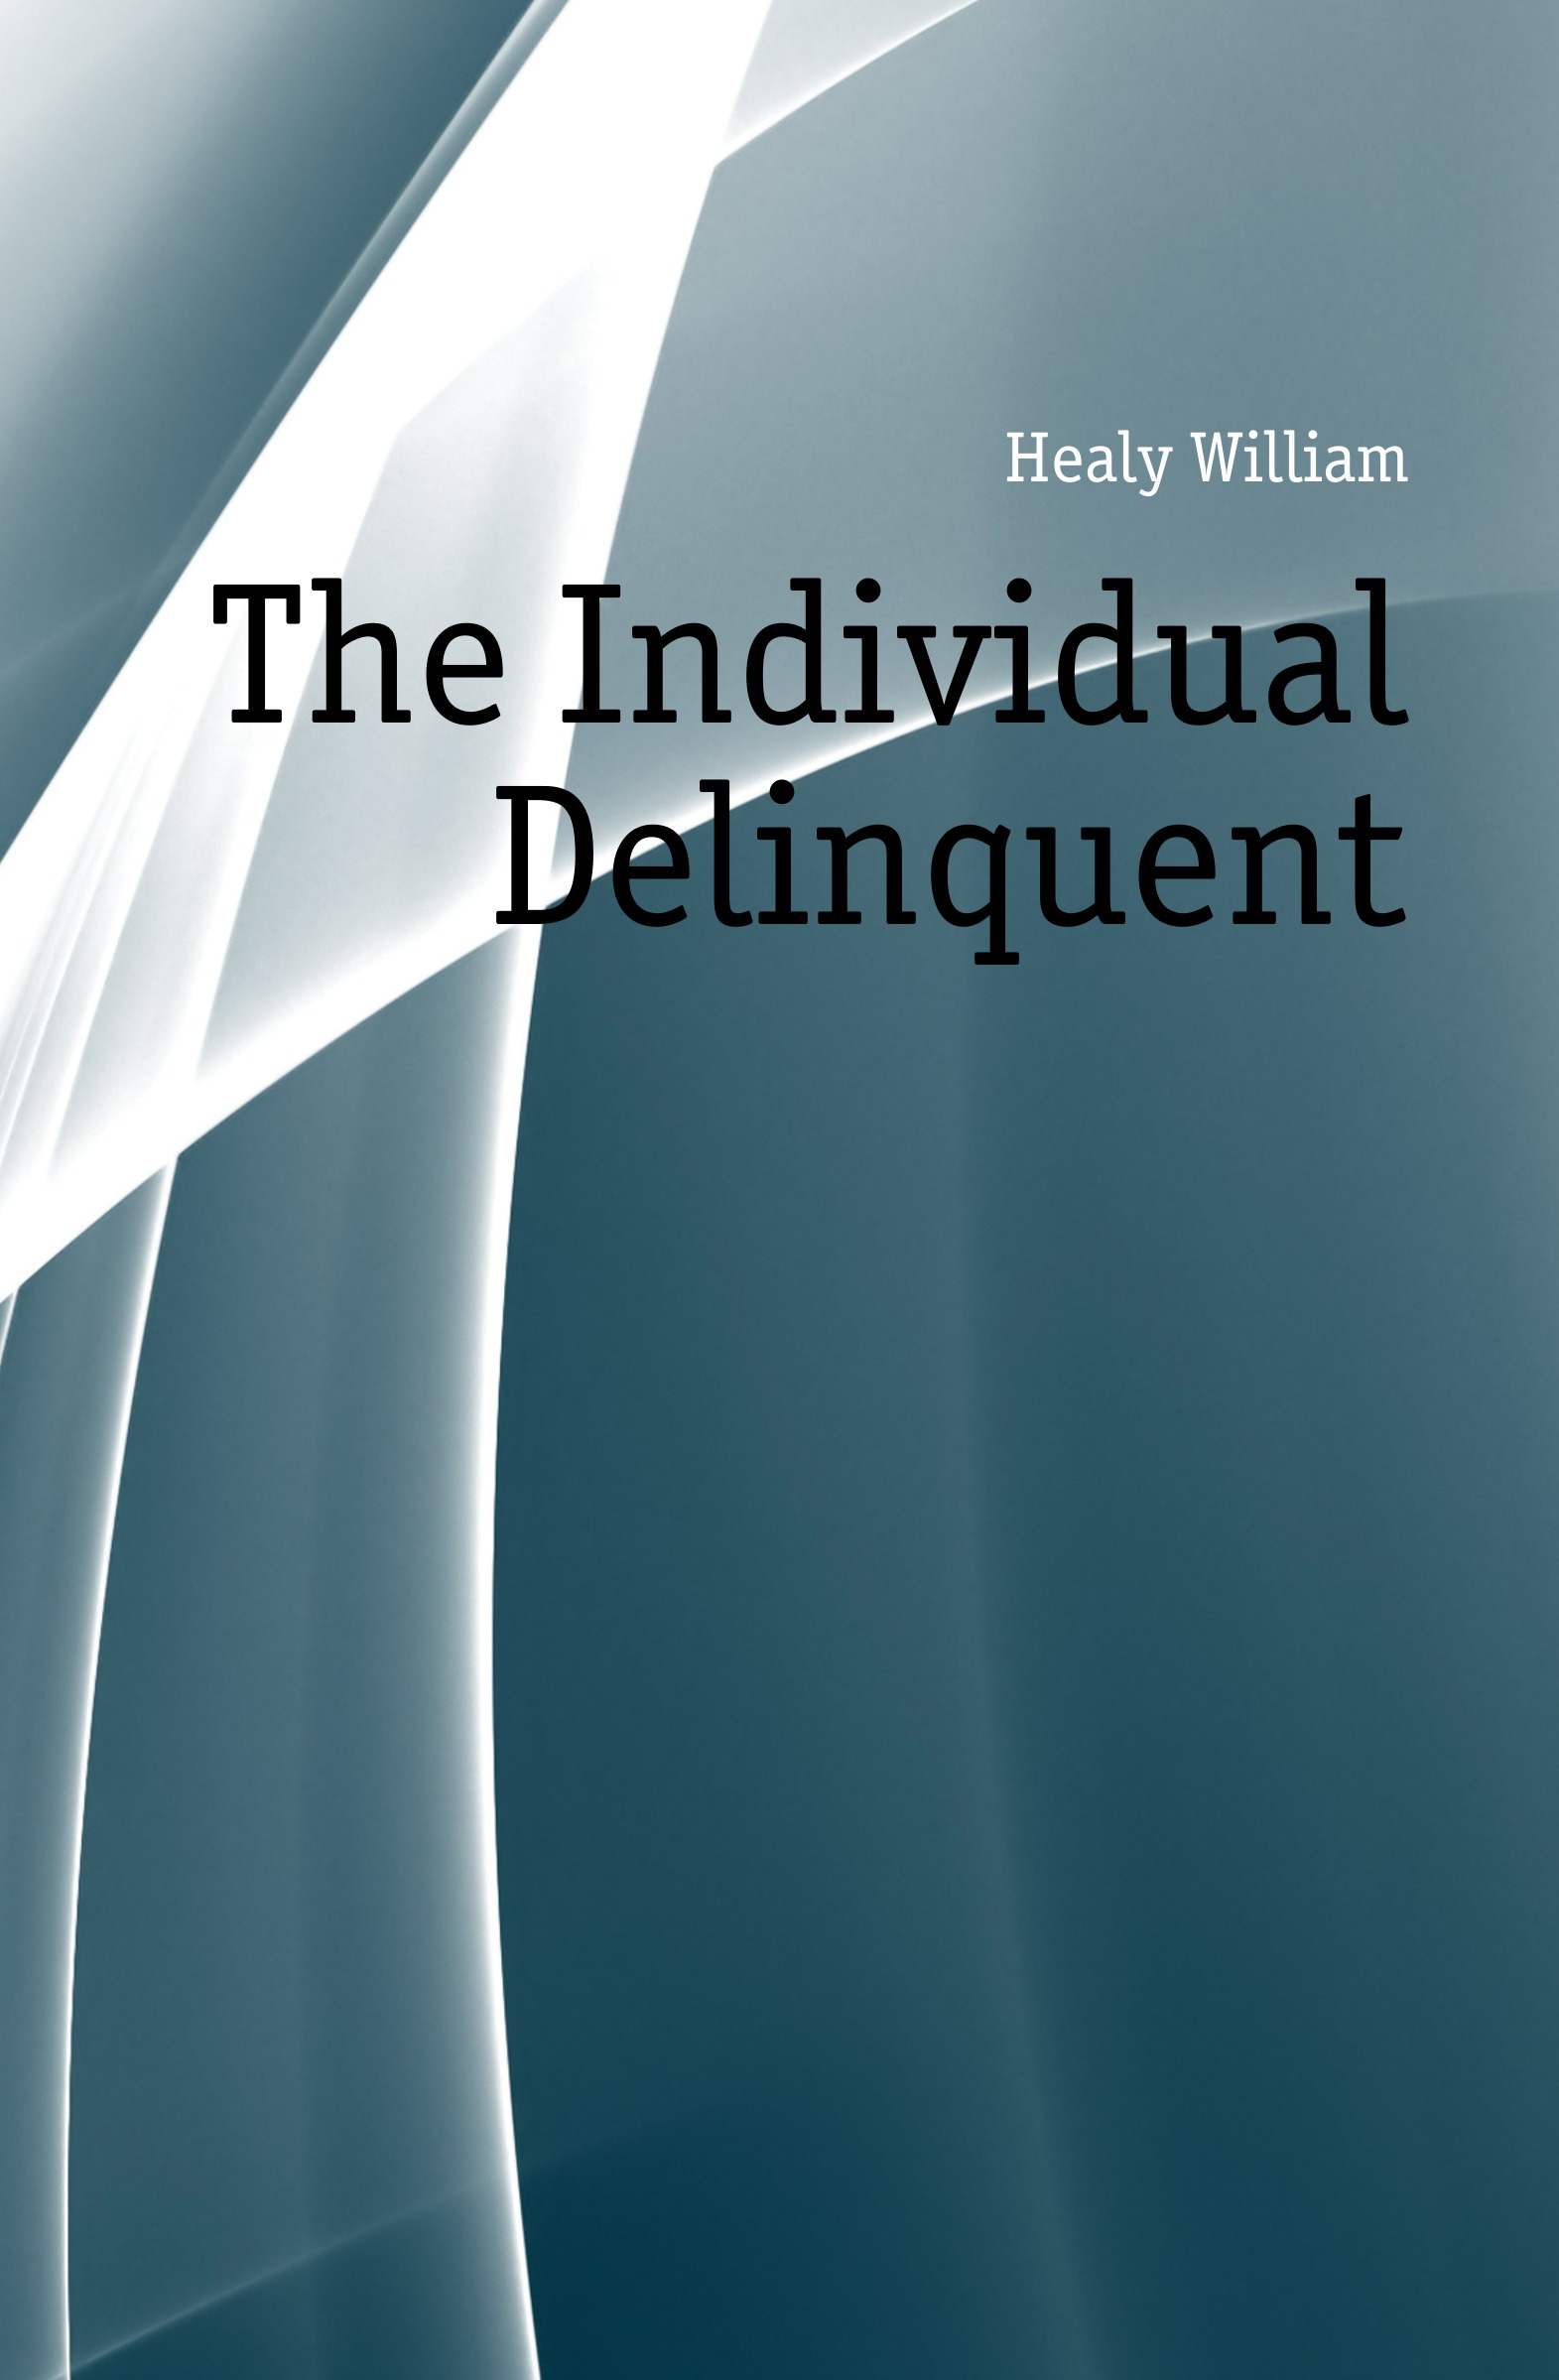 Фото Healy William The Individual Delinquent